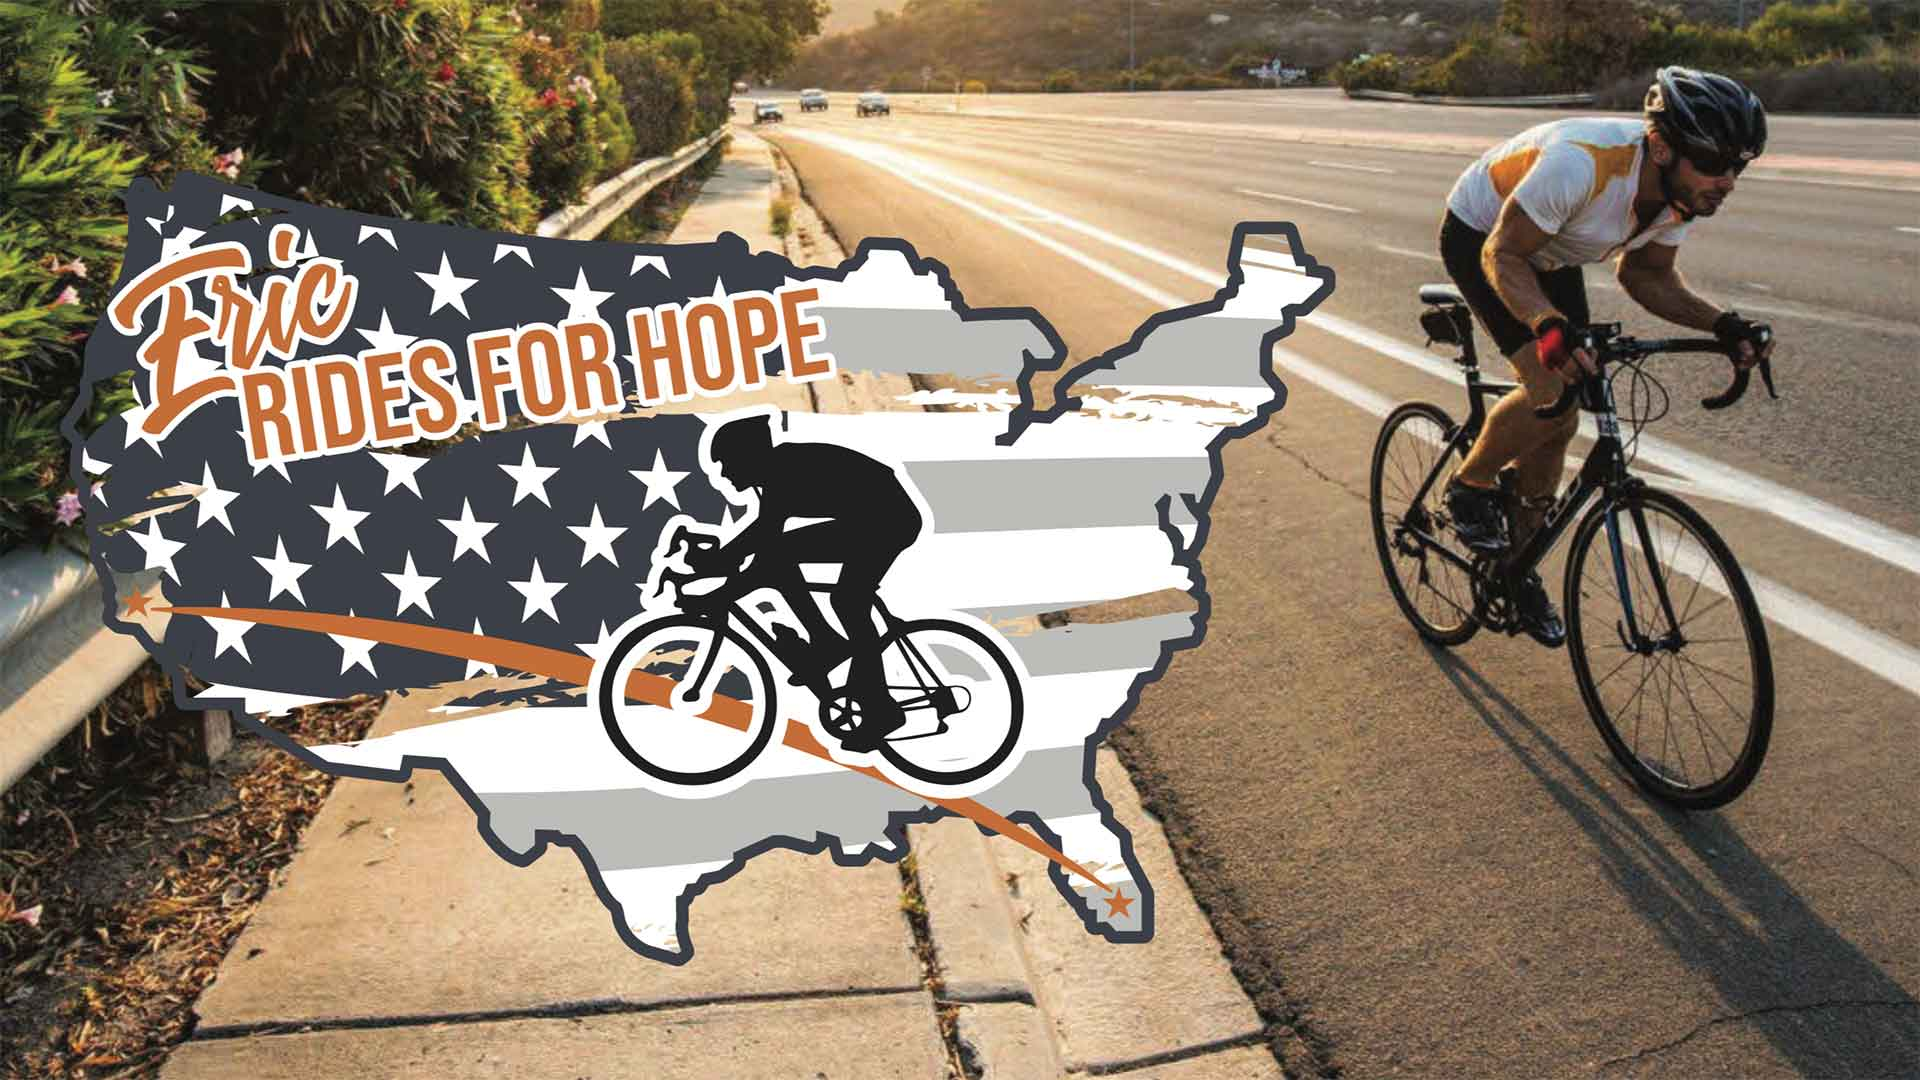 eric rides for hope